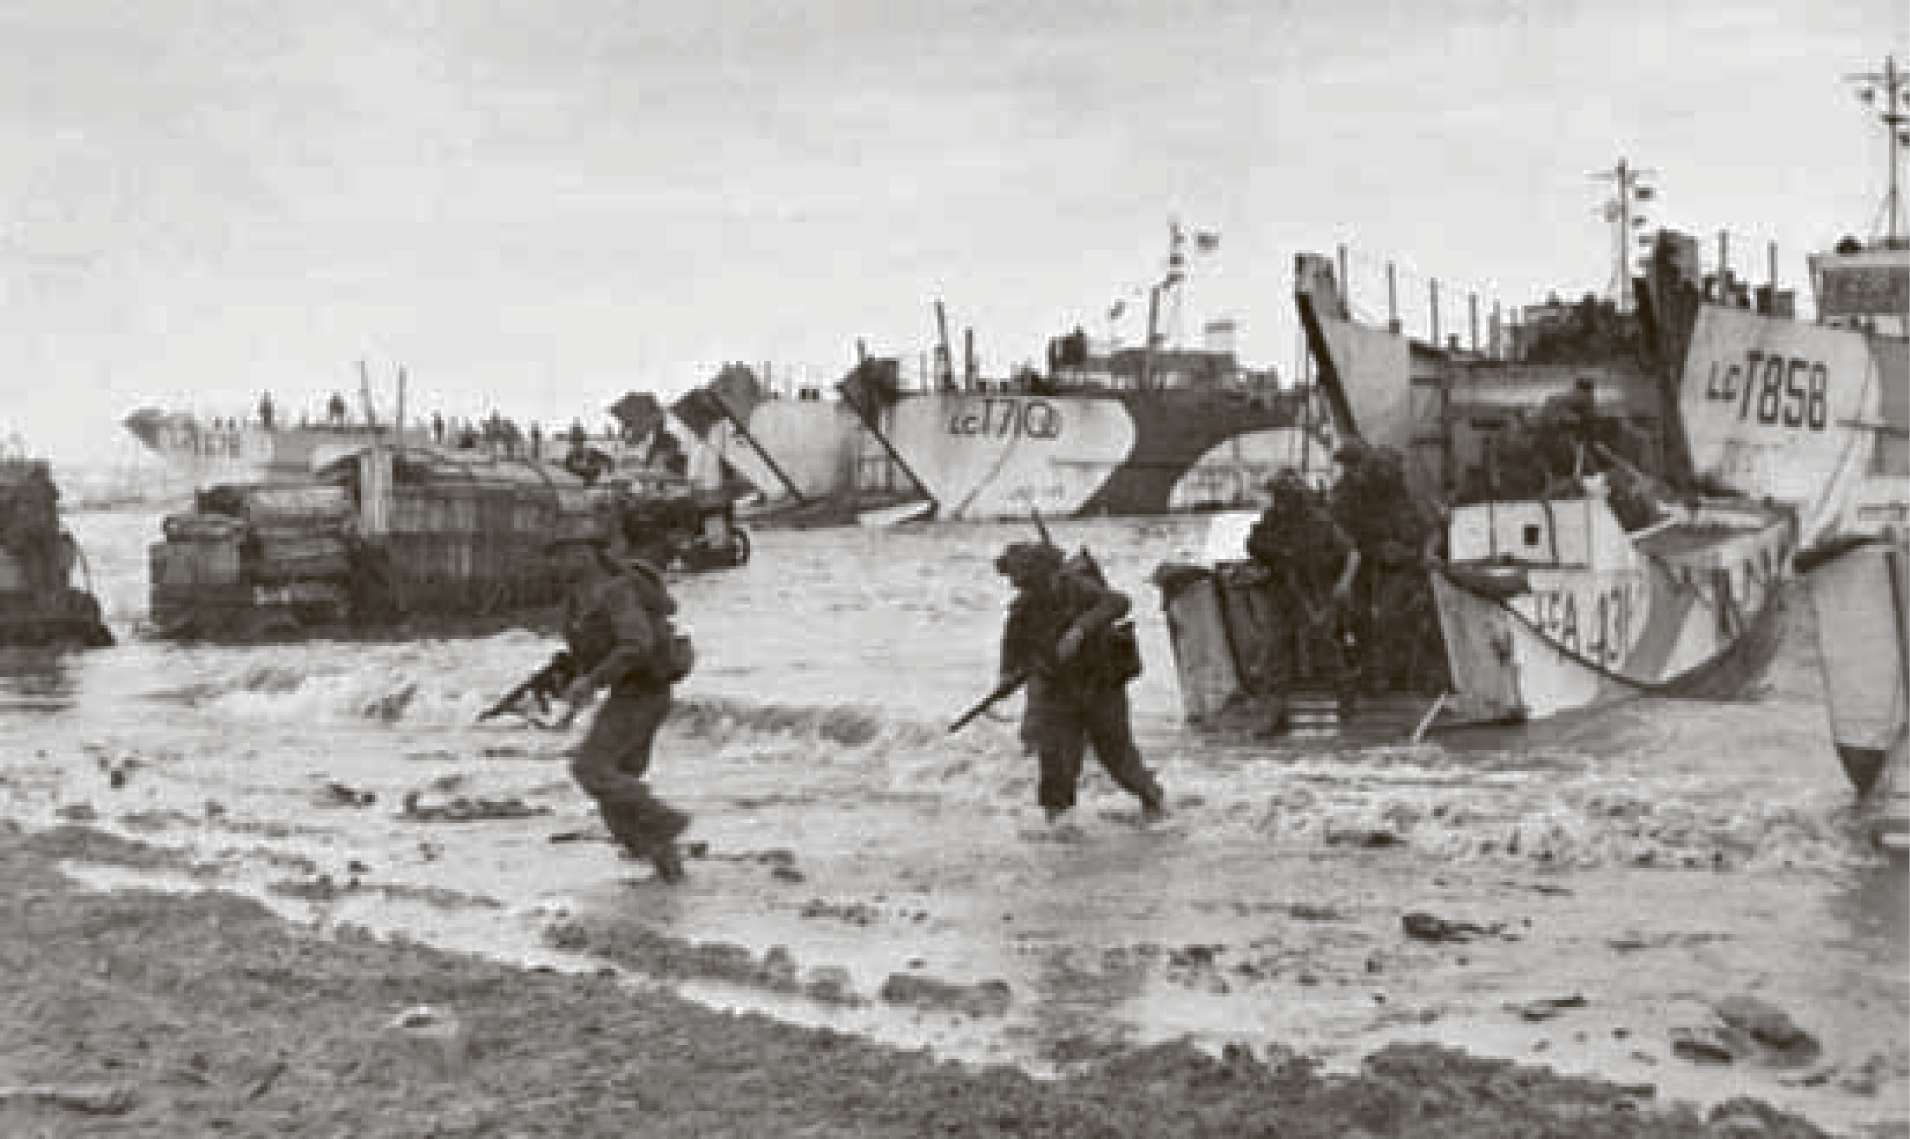 THE NEWSDESK: Lest we forget the reasons D-Day veterans fought on the beaches